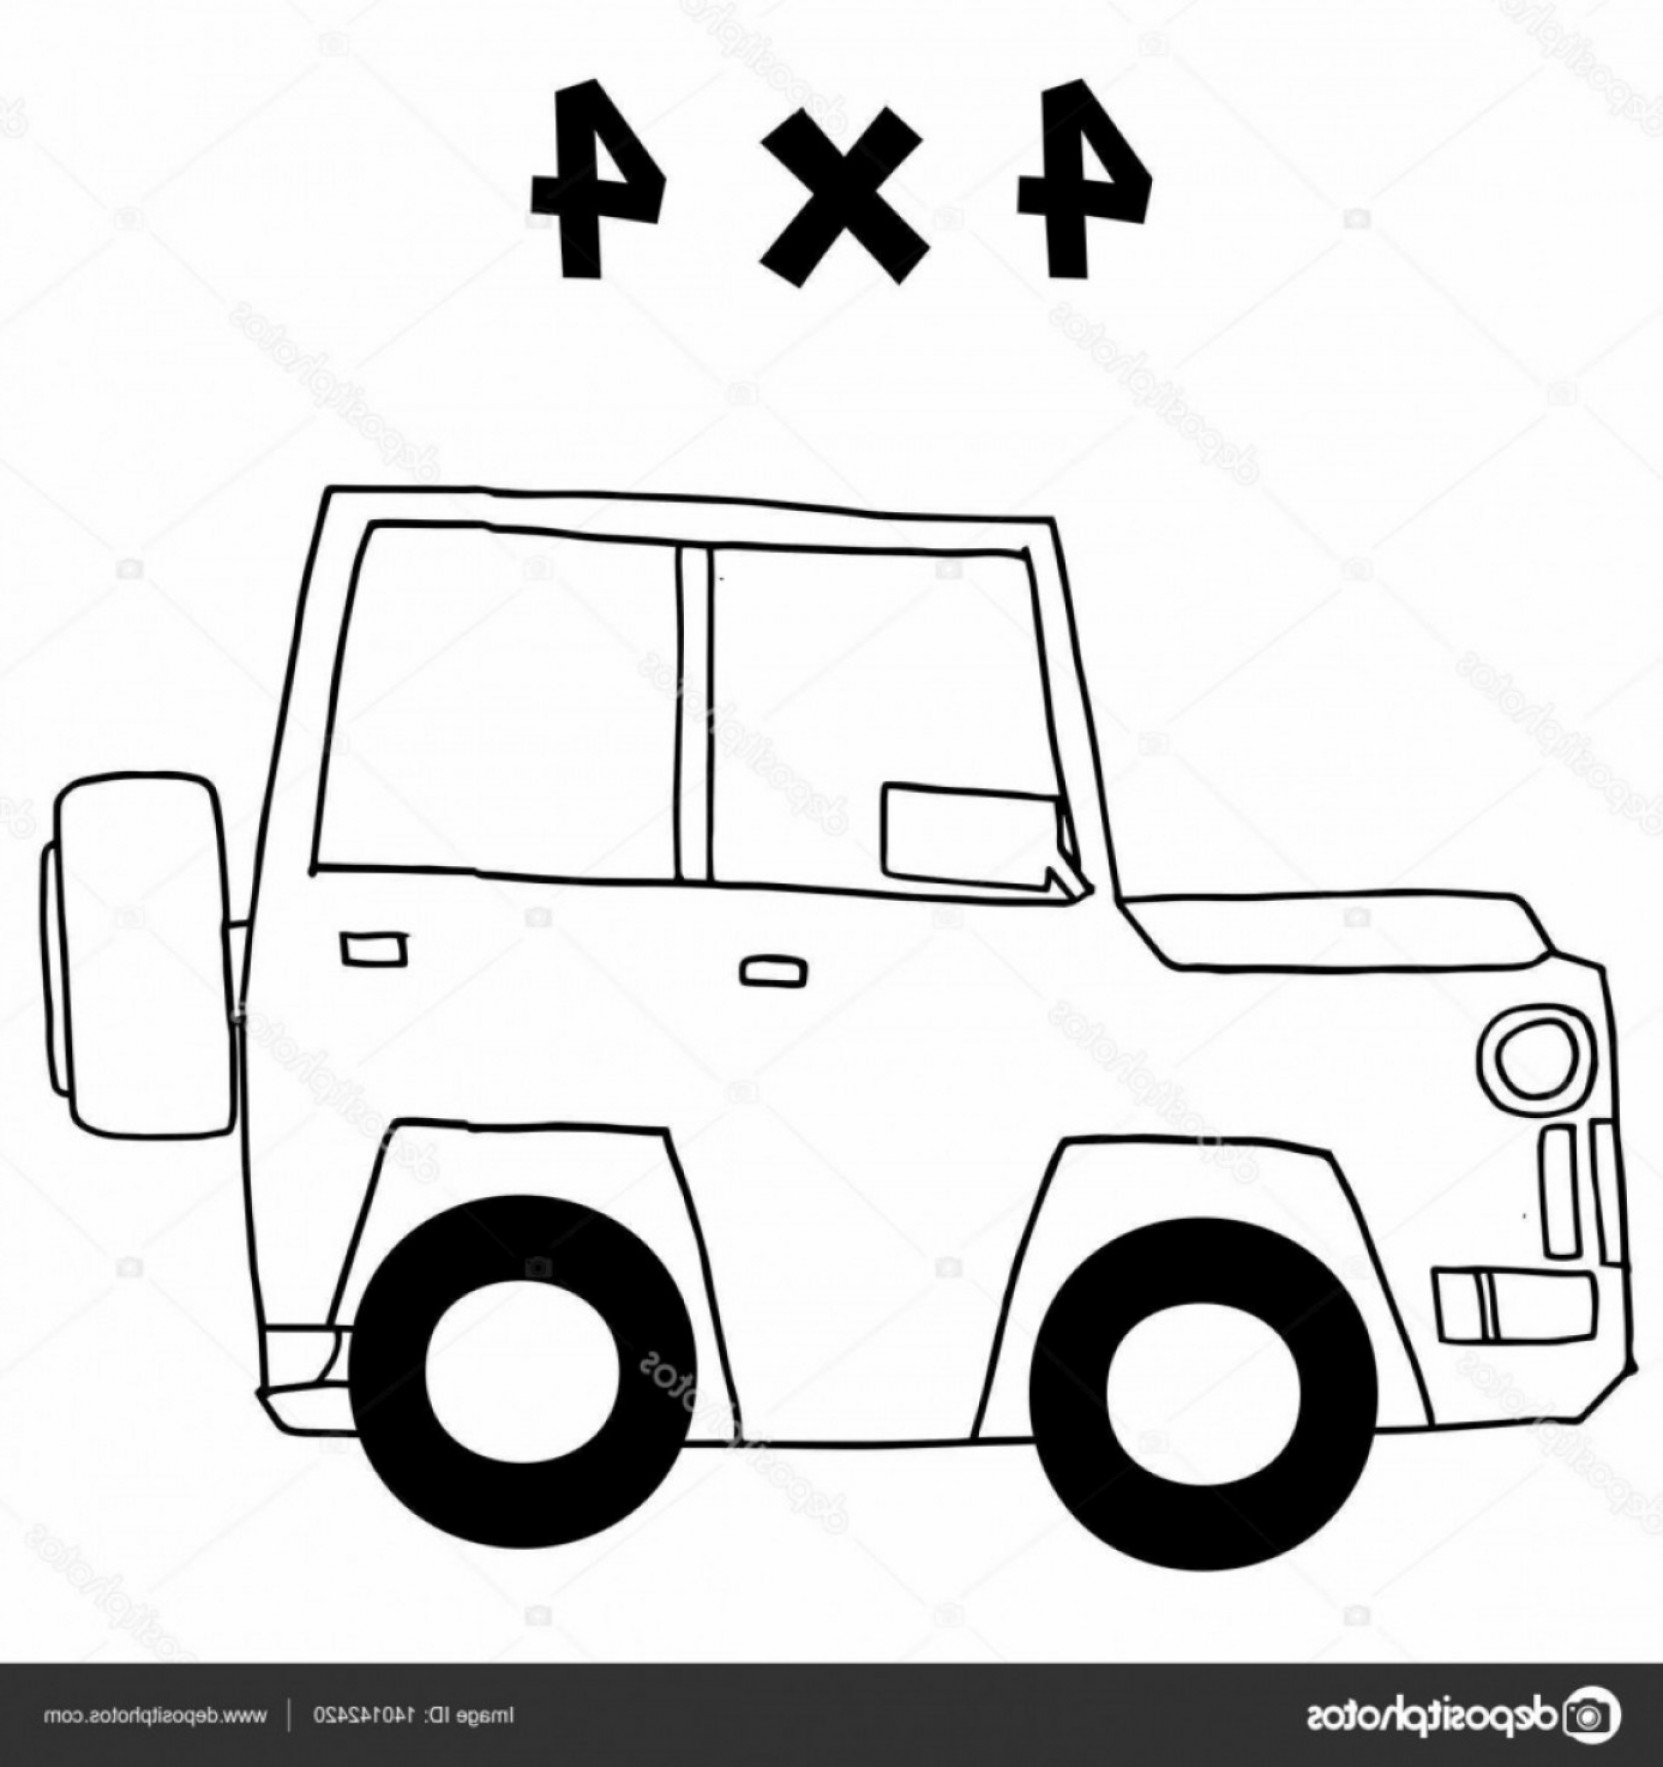 Vector Clip Art Of Jeep: Stock Illustration Jeep Of Vector Art Illustration